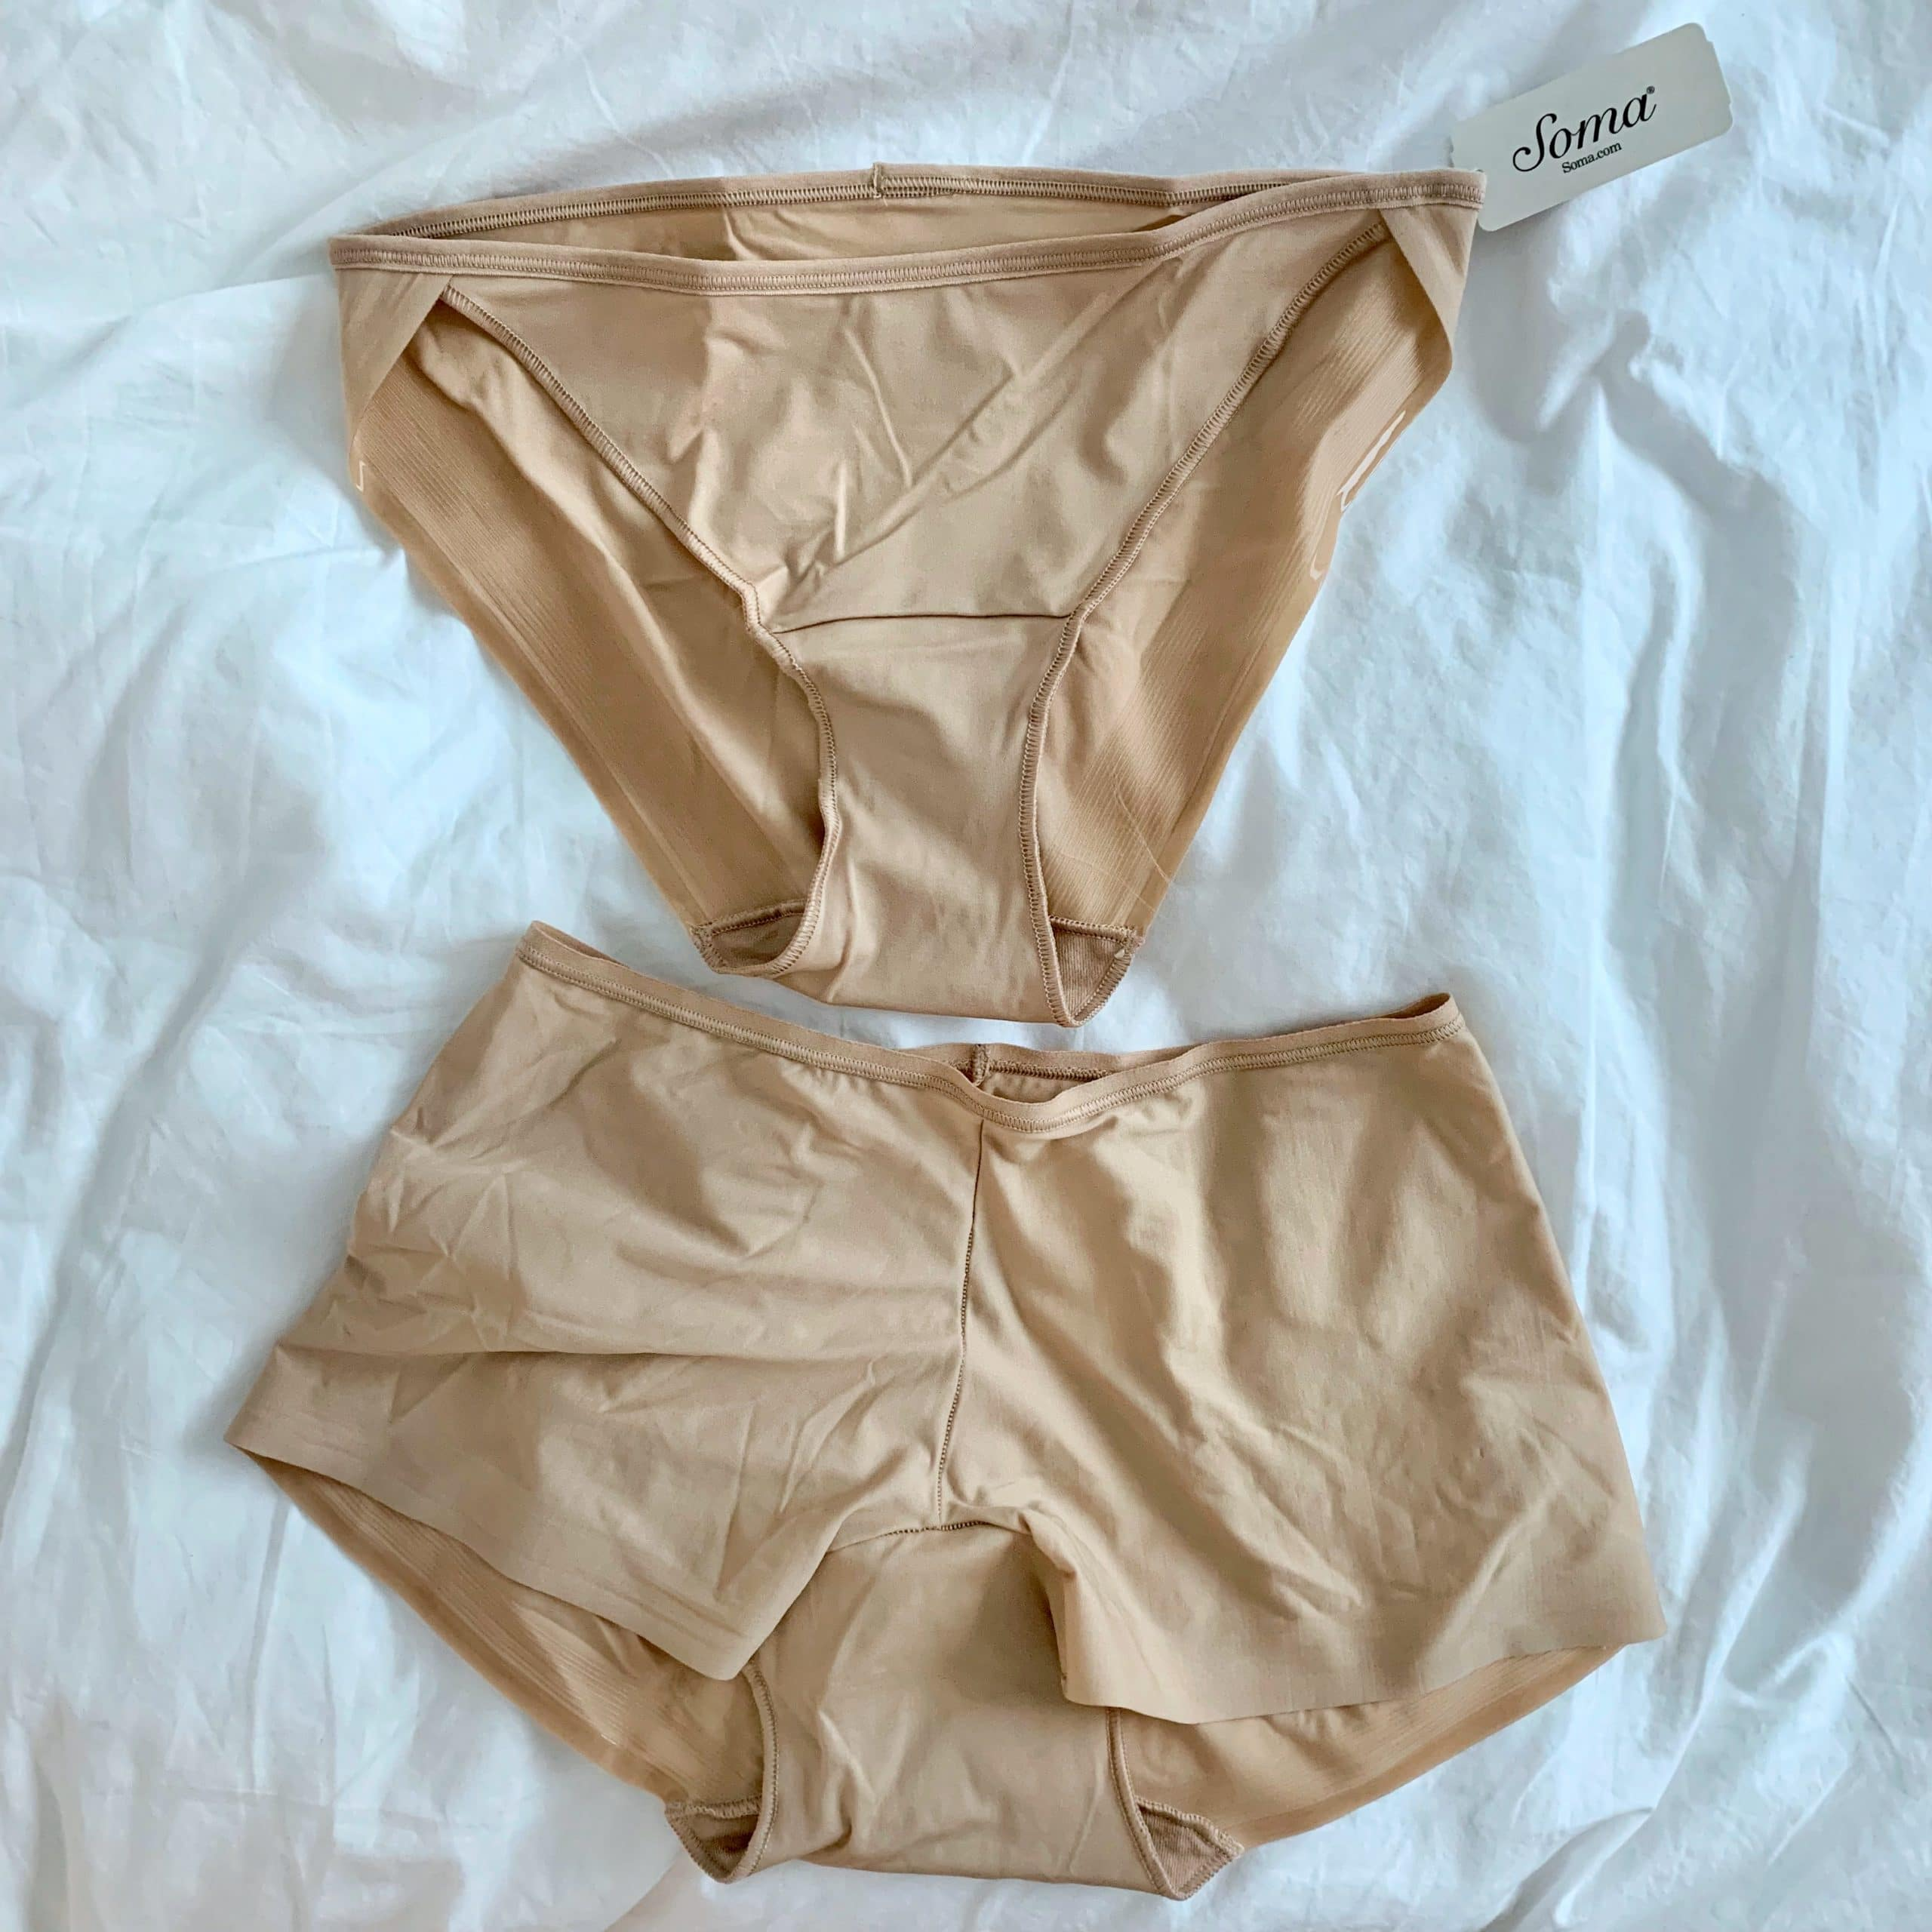 review of soma underwear